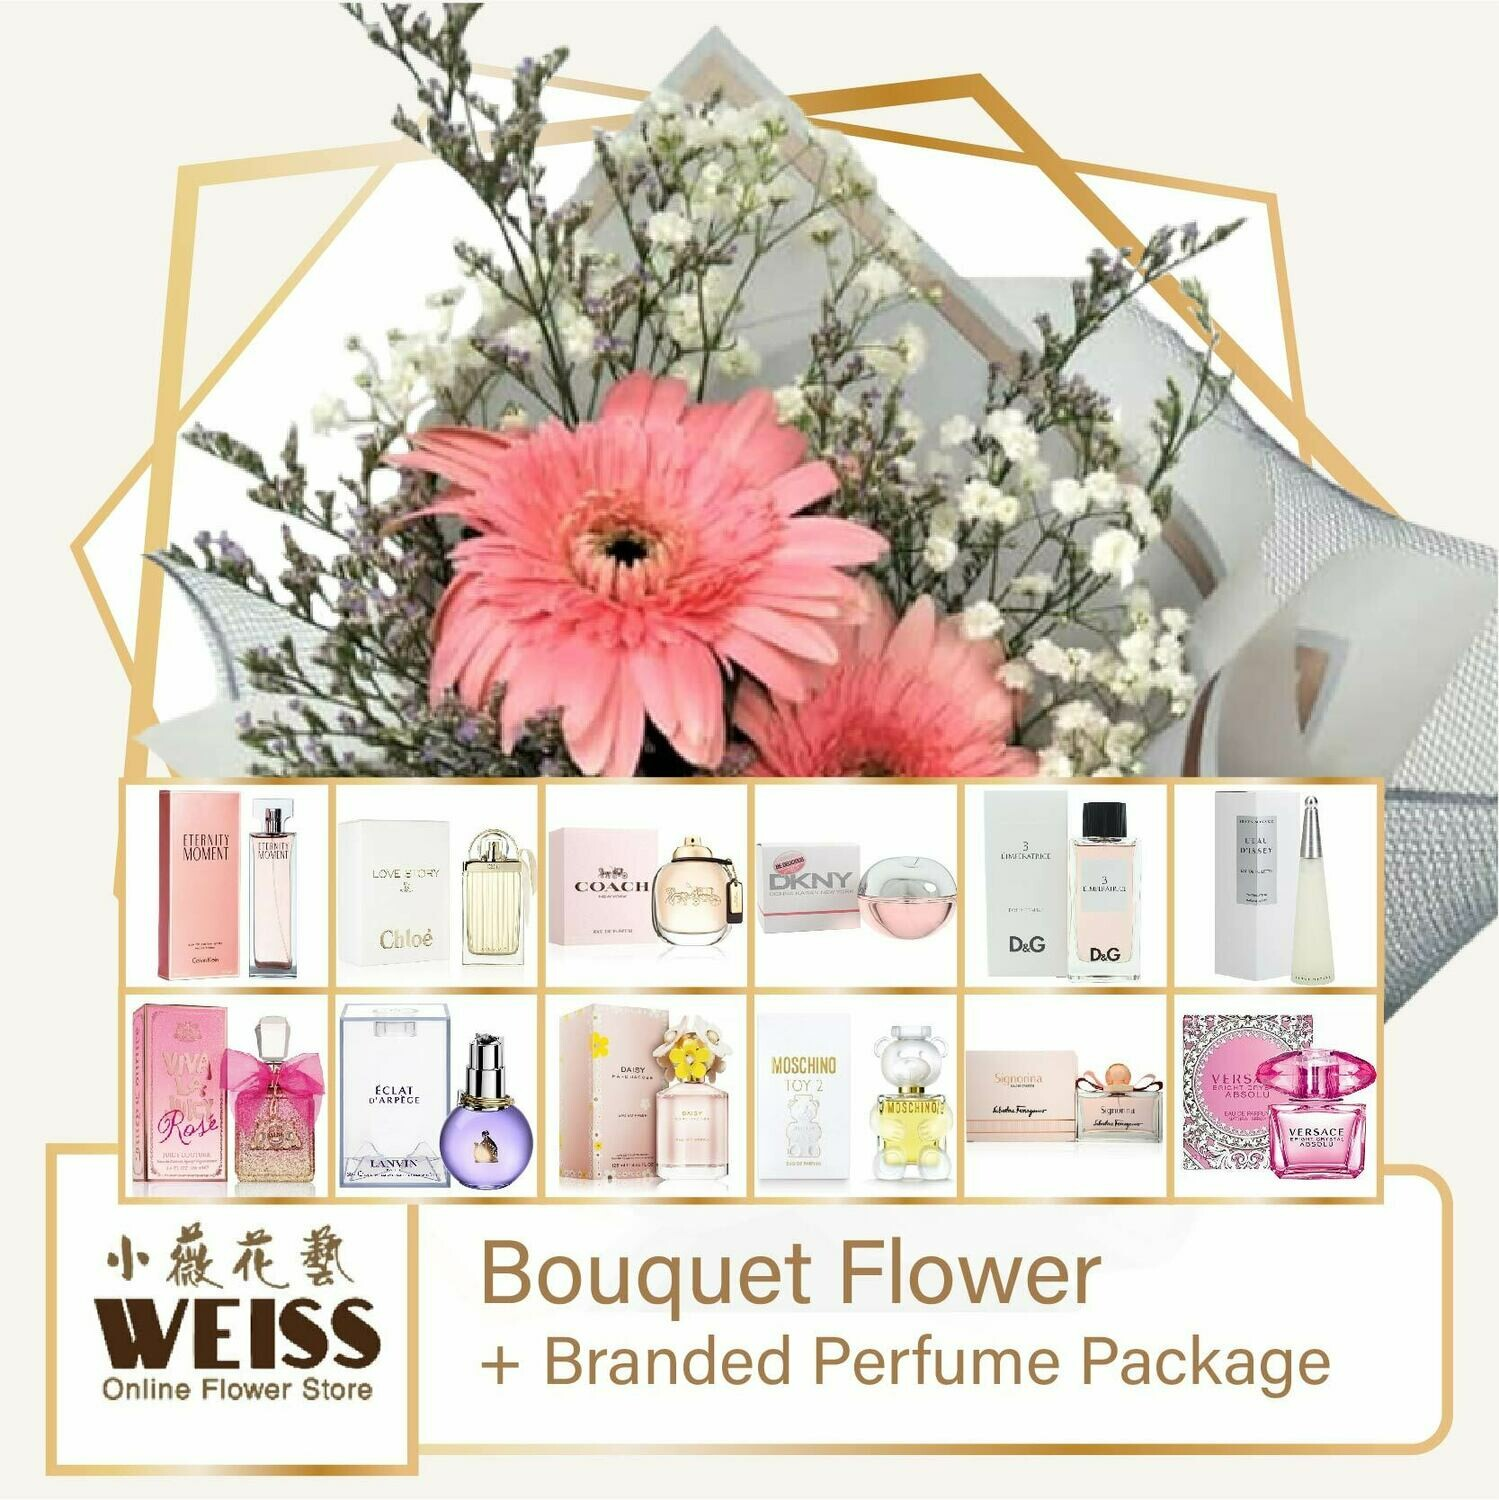 Weiss Florist 2 stalks Pink Daisy  + Branded Perfume Package (Free Shipping! Only deliver in JB)